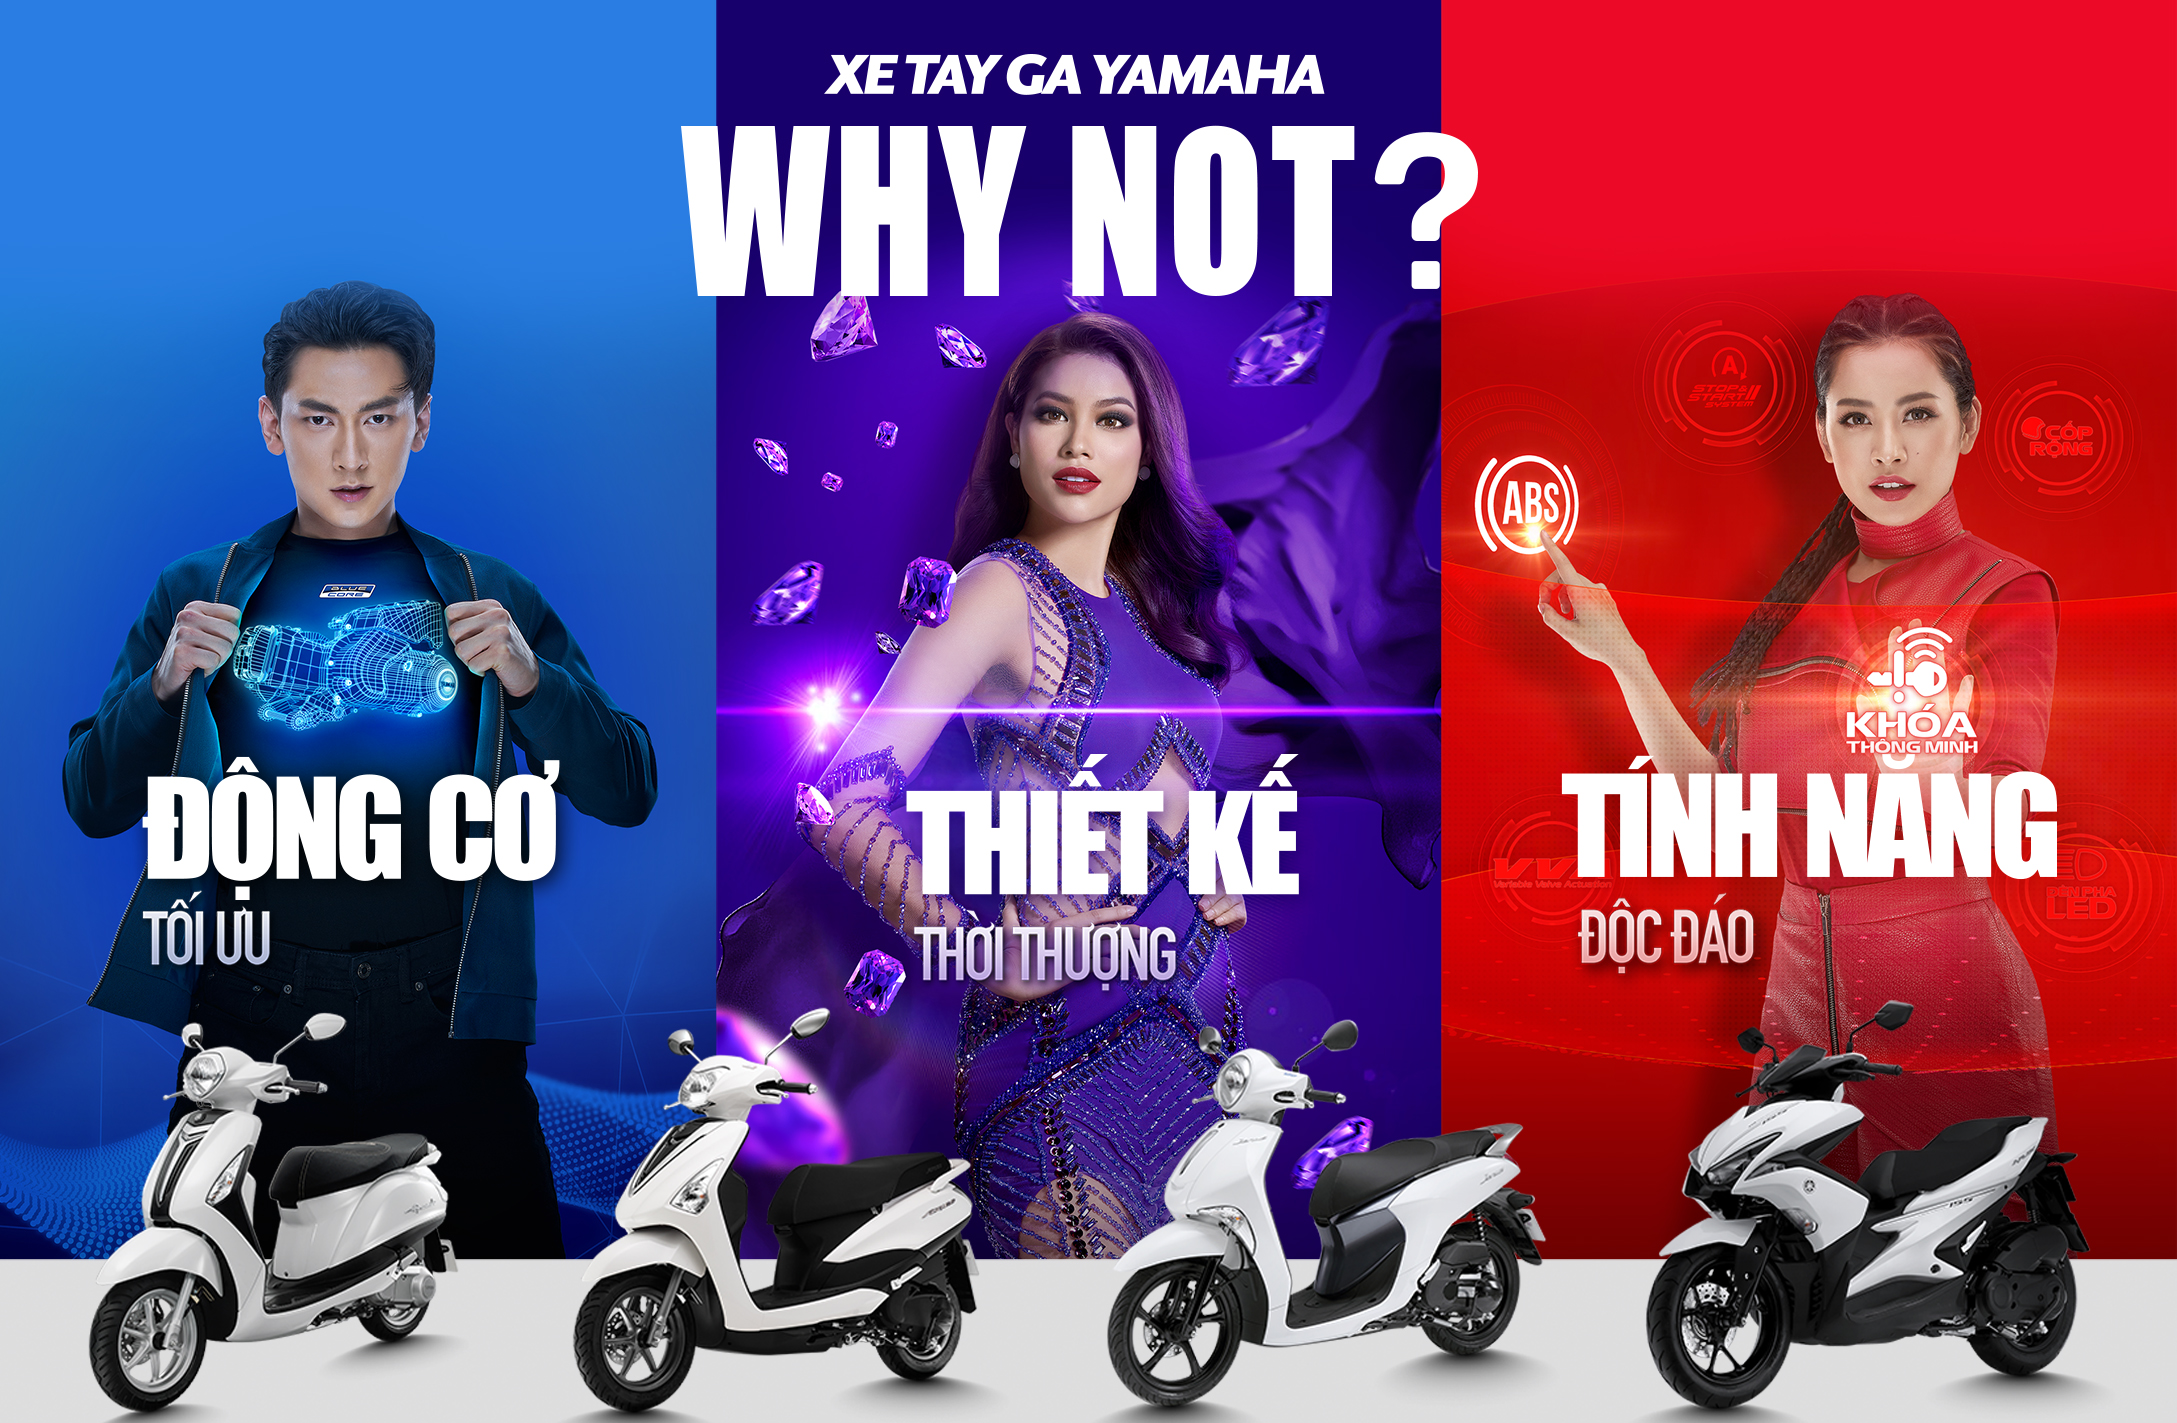 CHIẾN DỊCH WHY NOT YAMAHA VIET NAM